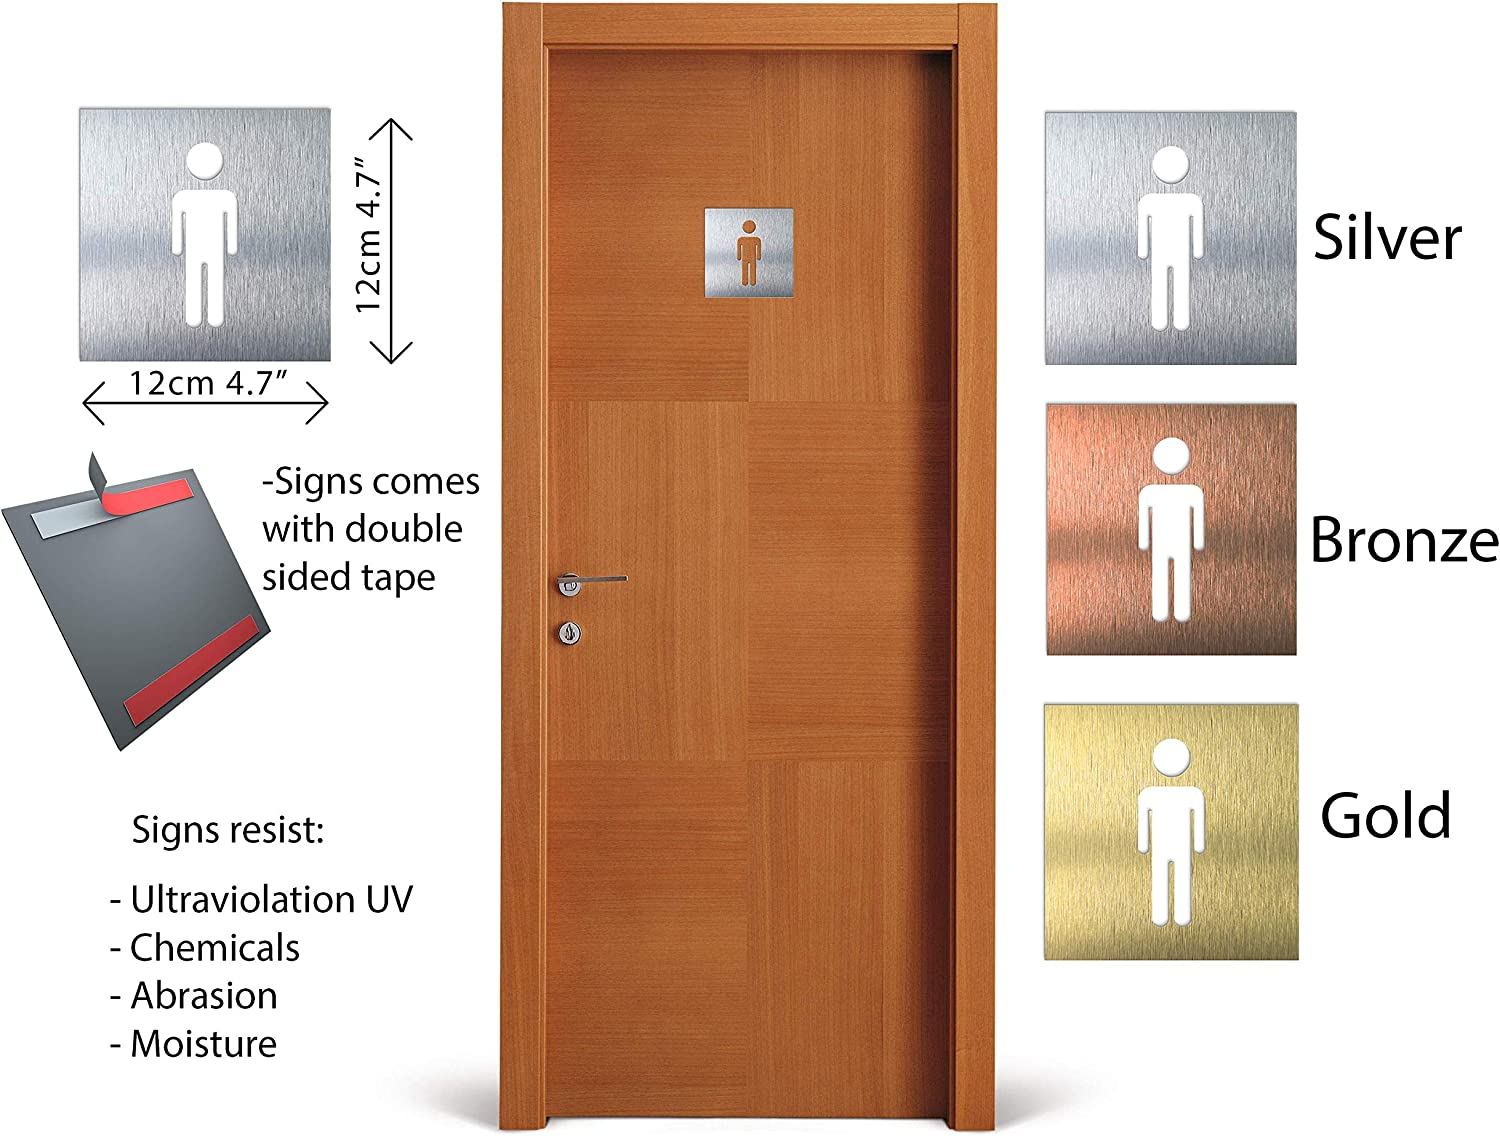 Male Decal signe de salle de bain m/âle- men symbol Aluminium Male Bathroom sign Men restroom plaque toilet decoration- indoor /& outdoor- door and wall WC signage Signe de toilettes